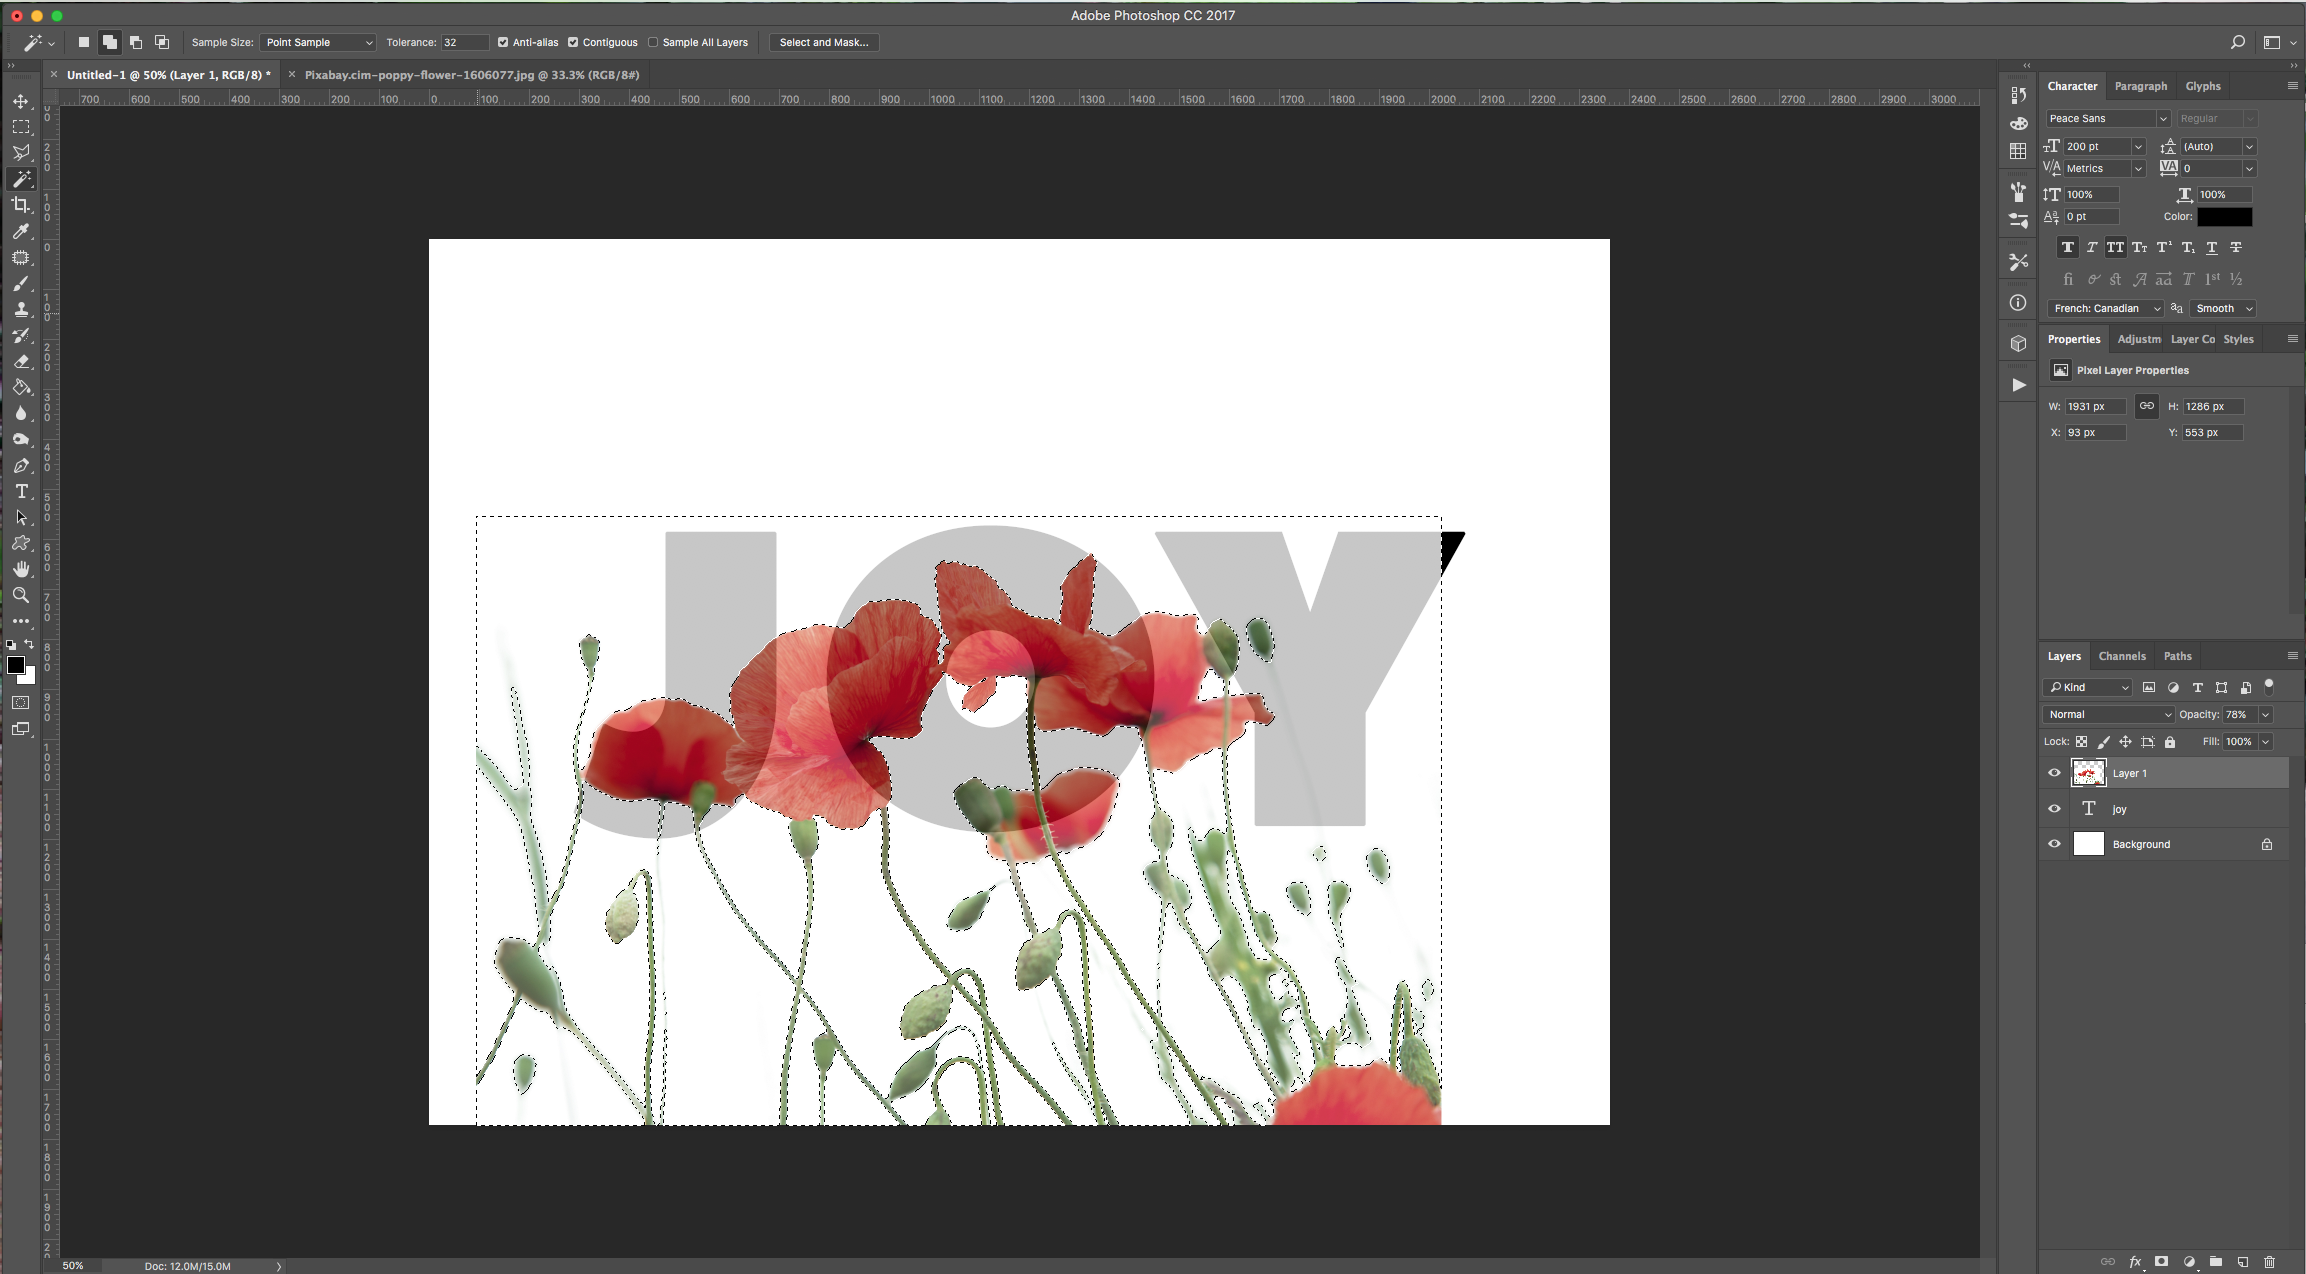 how to get rid of text in an image photoshop